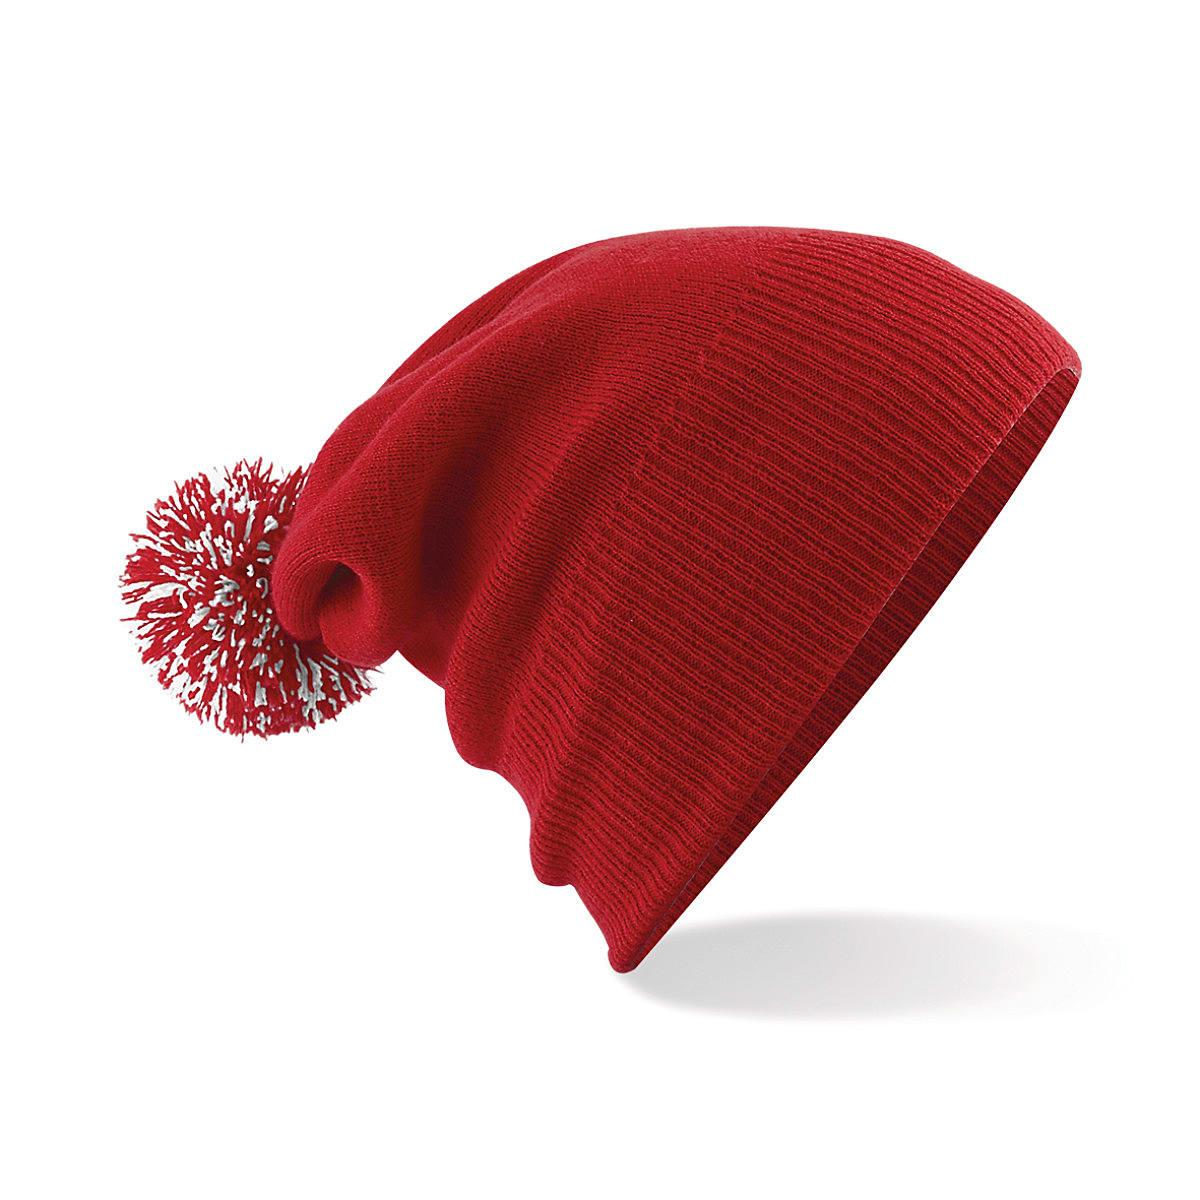 Beechfield Snowstar Beanie Hat in Classic Red / White (Product Code: B450)